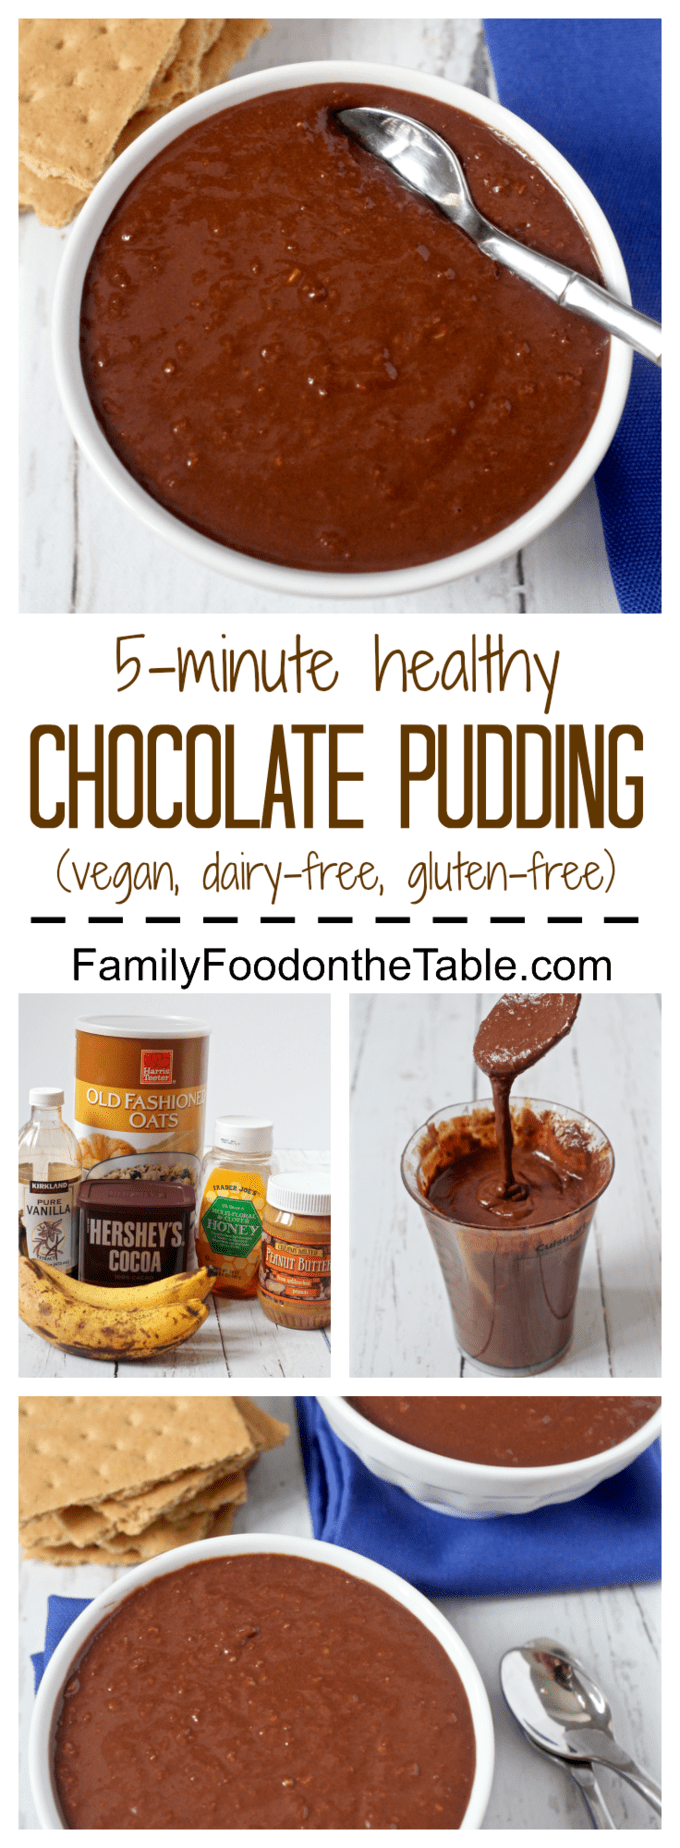 Healthy chocolate pudding - a no-cook chocolate pudding that's naturally sweetened with honey (also dairy-free, gluten-free and can be vegan!) | FamilyFoodontheTable.com